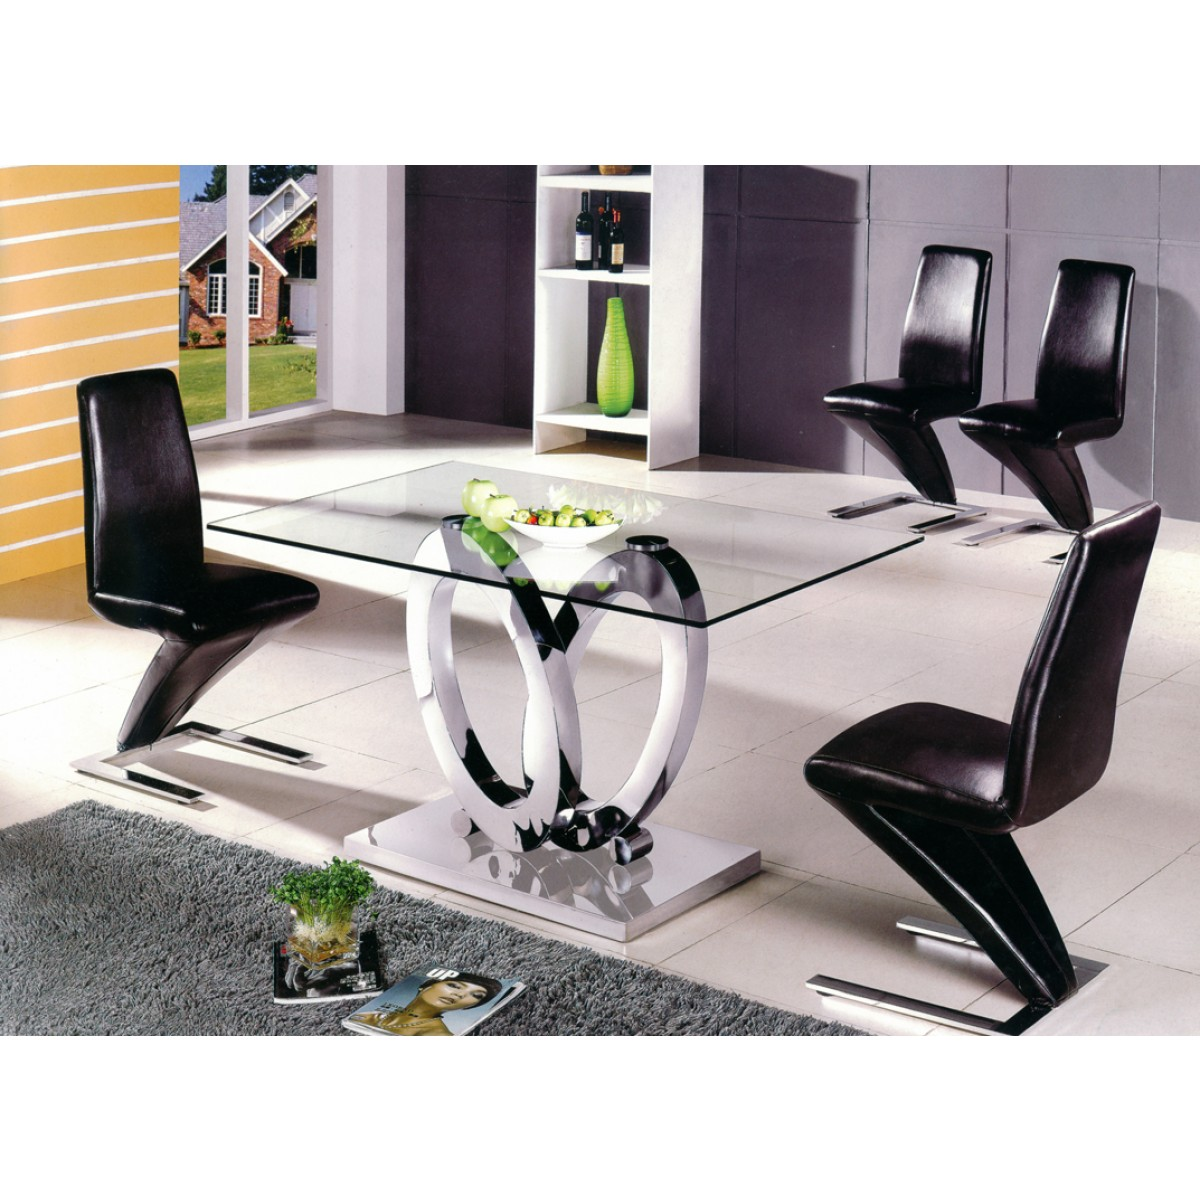 Table manger design ellipse taille au choix tables for Table salle a manger moderne design